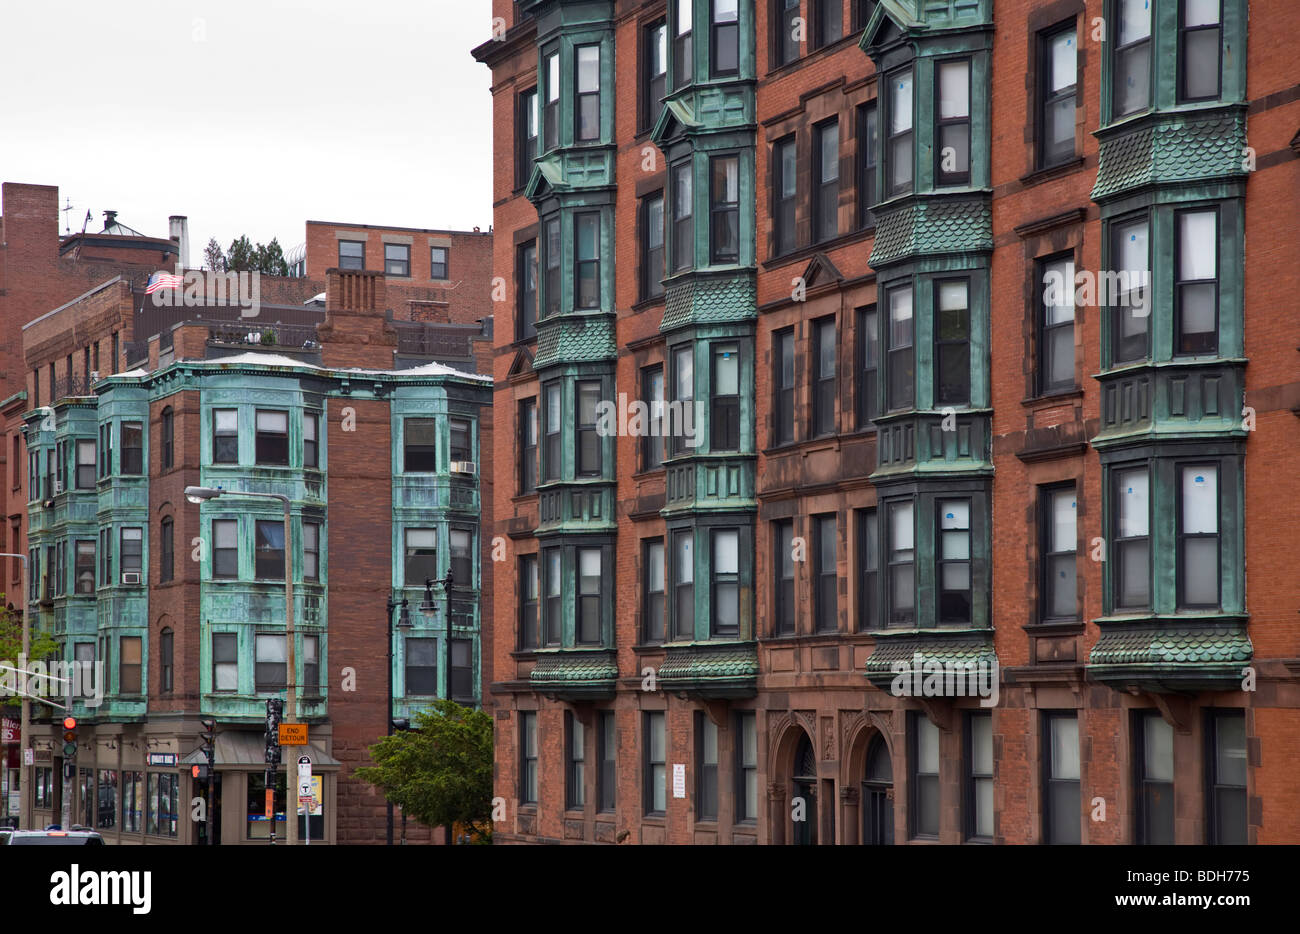 Good BRICK APARTMENT BUILDINGS   BOSTON, MASSACHUSETTS   Stock Image